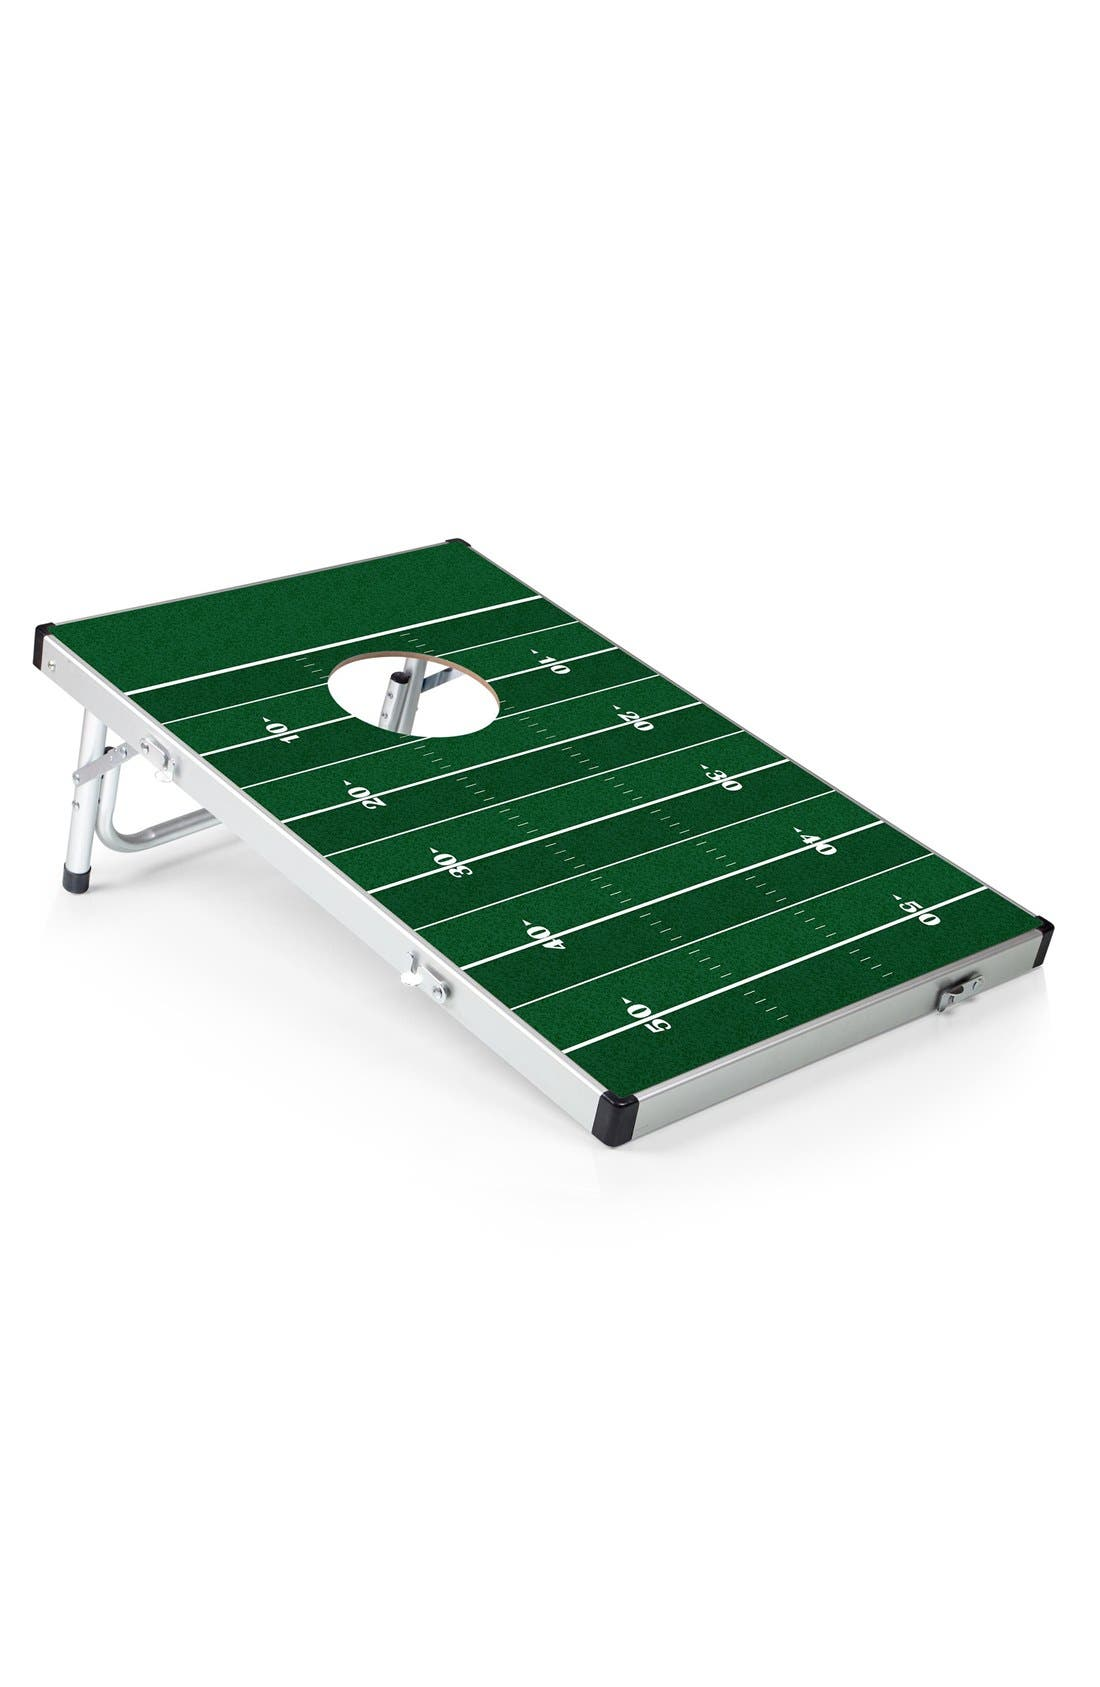 Main Image - Picnic Time 'Football' Bean Bag Toss Game